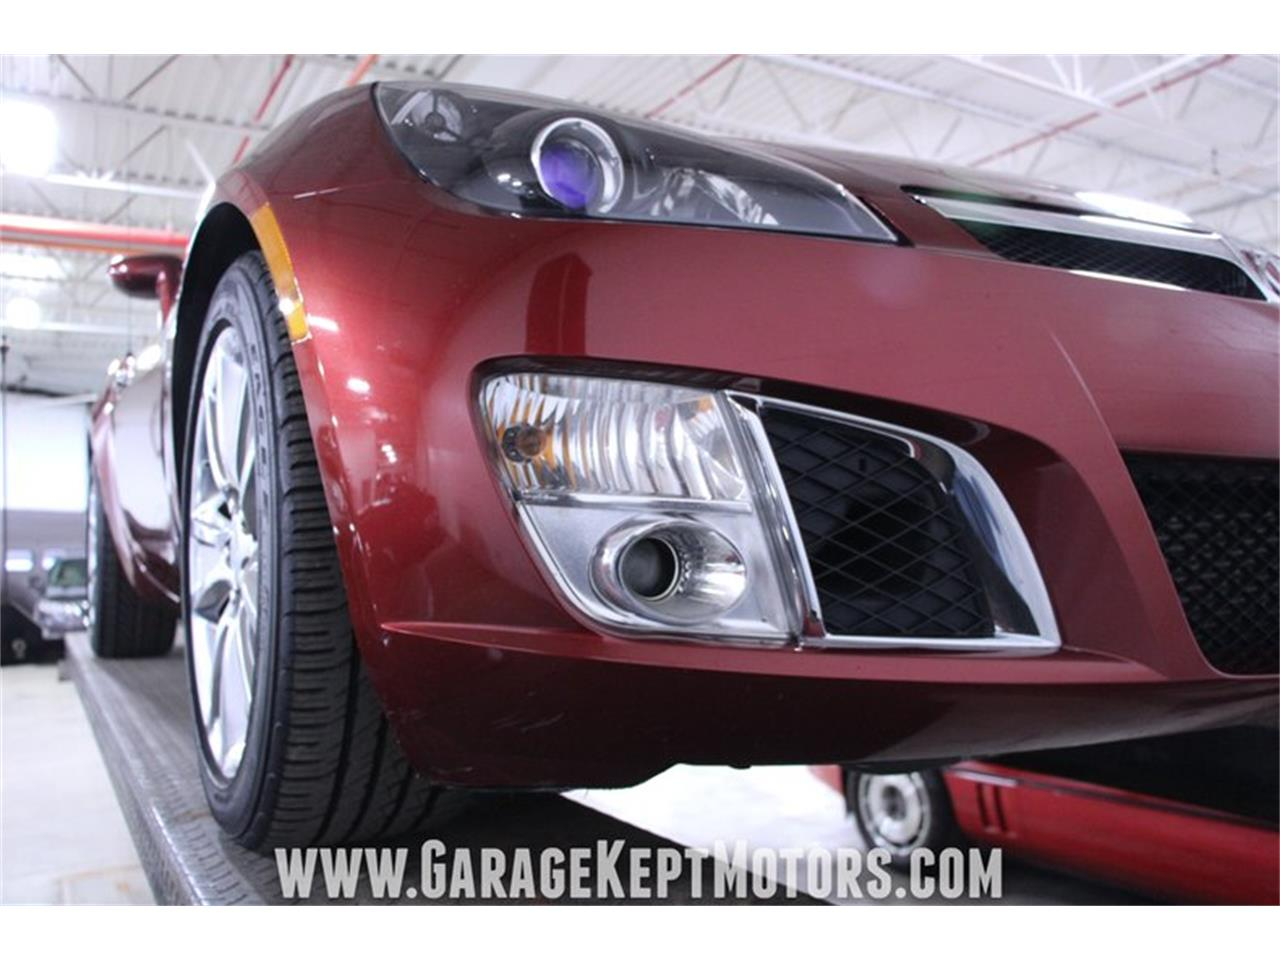 2009 Saturn Sky for sale in Grand Rapids, MI – photo 97